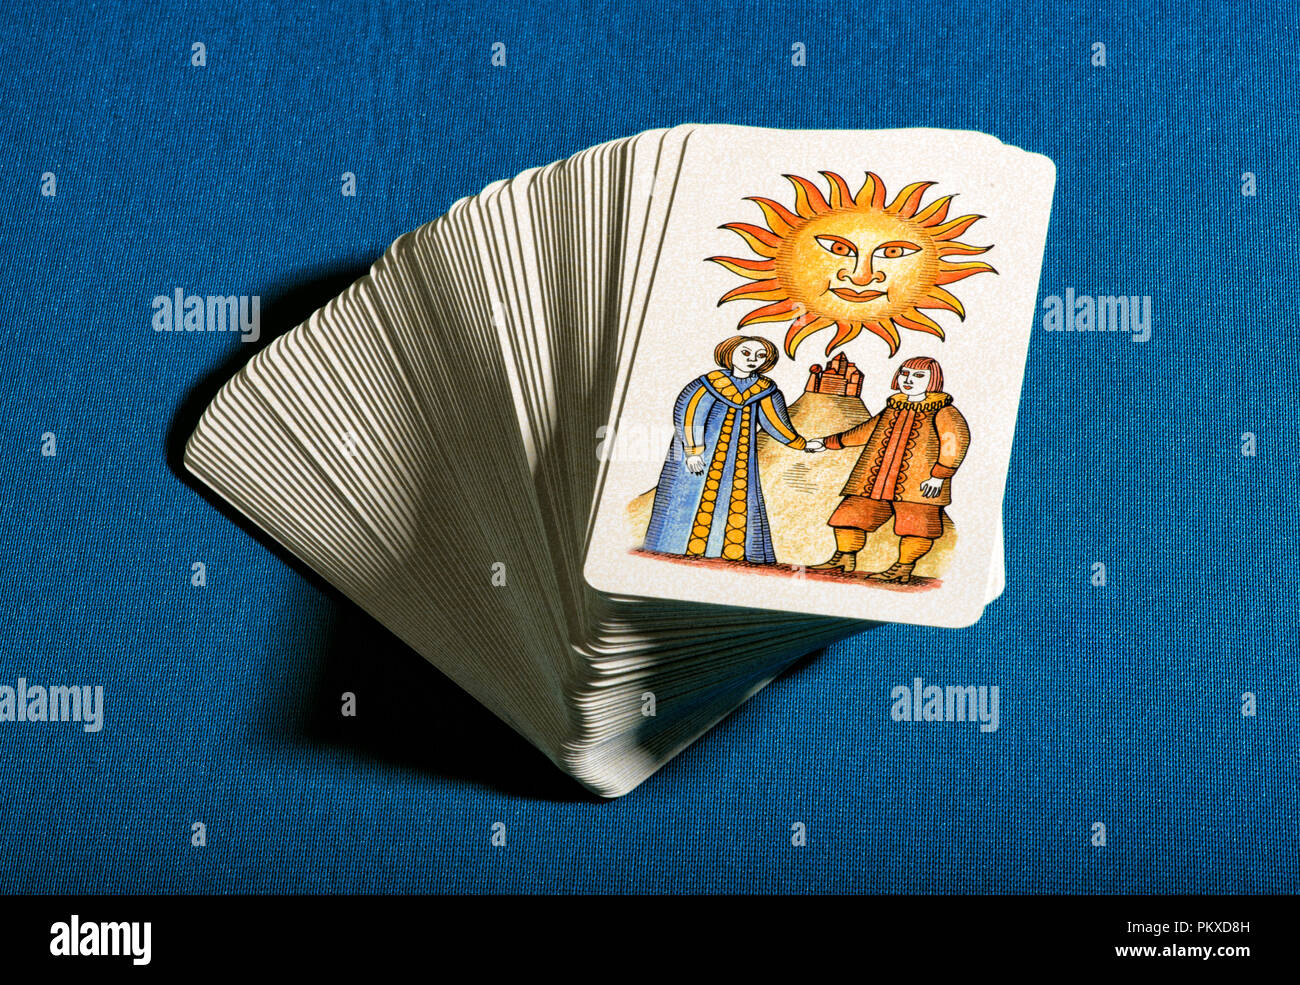 Deck of stacked tarot cards with the pictorial card depicting the Sun on top conceptual of good fortune and optimism over a blue background - Stock Image